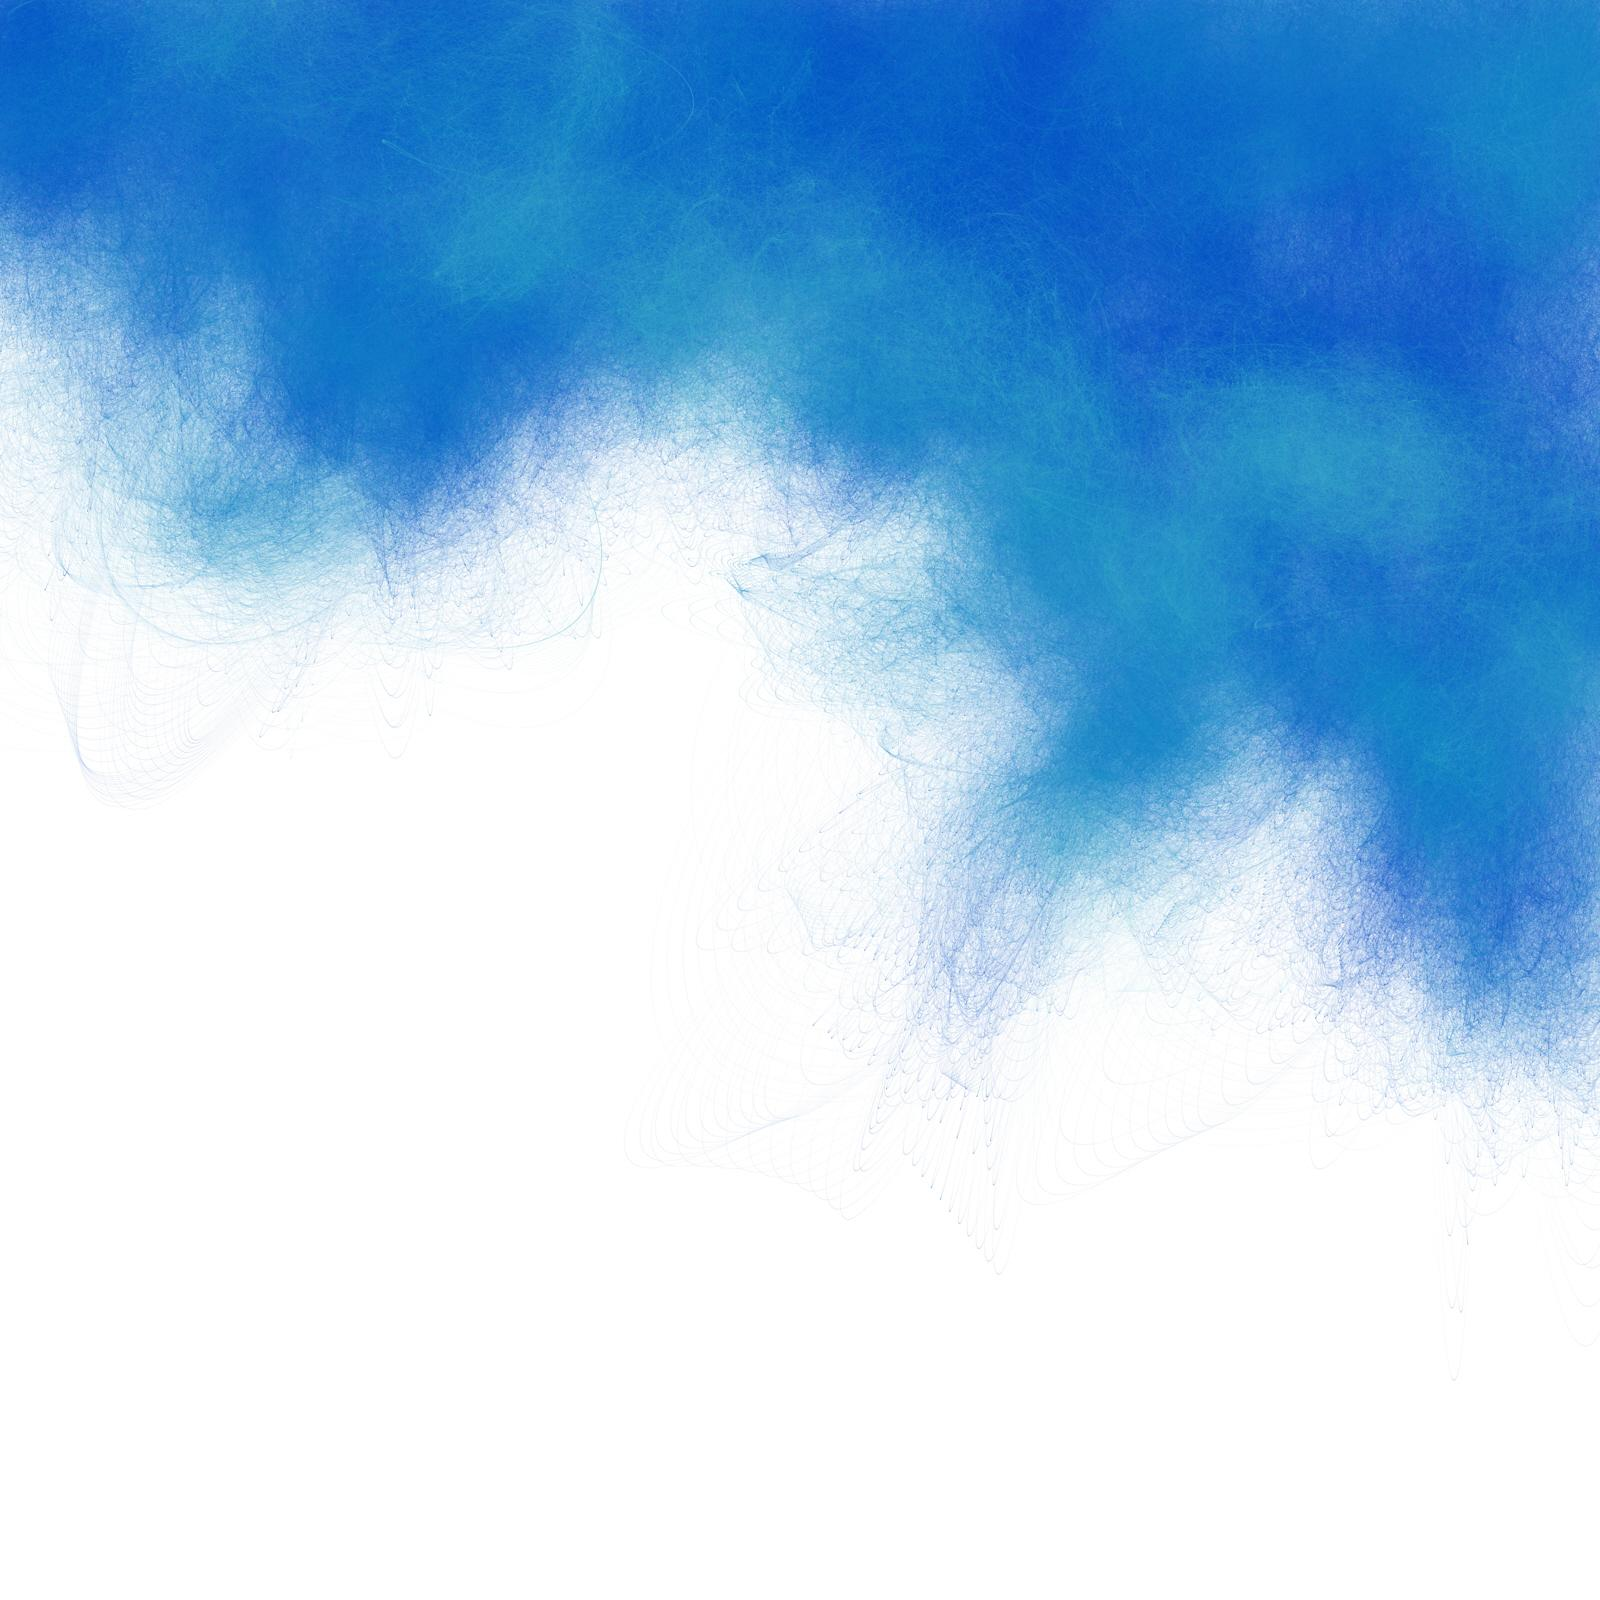 blue-smoke-background | The First Church of Deerfield